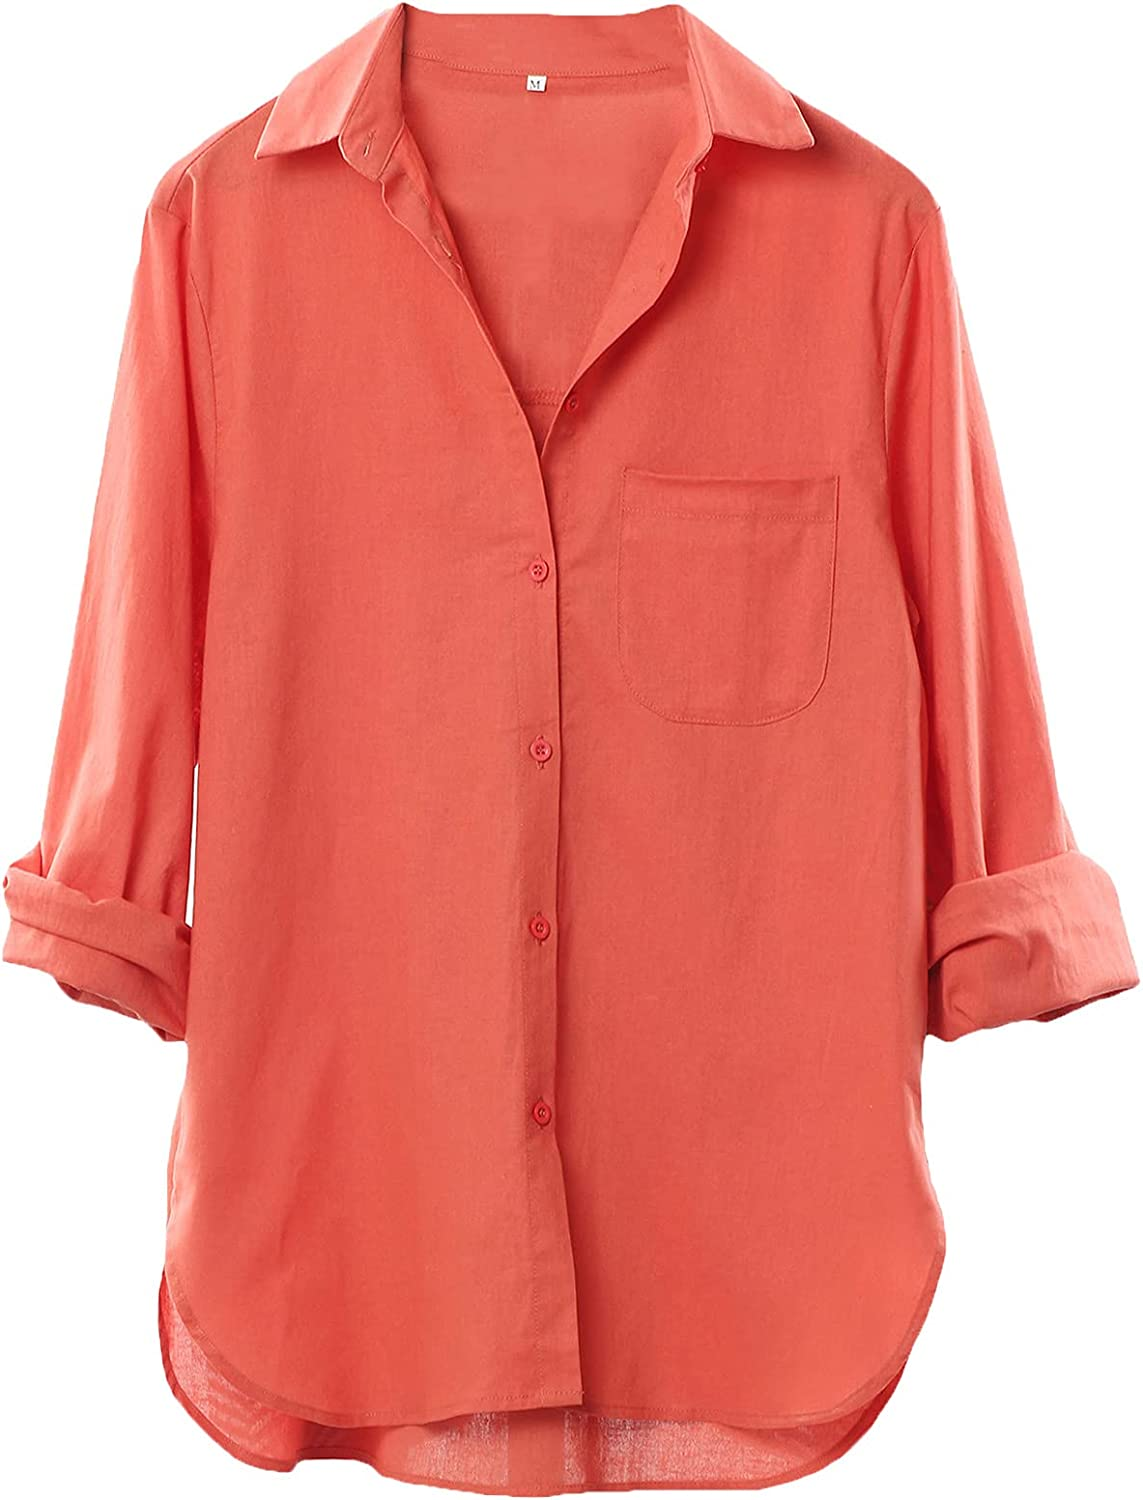 LaovanIn Women's Linen Shirts Button Down V Neck Shirt Long Sleeve Blouse Casual Plain Tops with Pockets